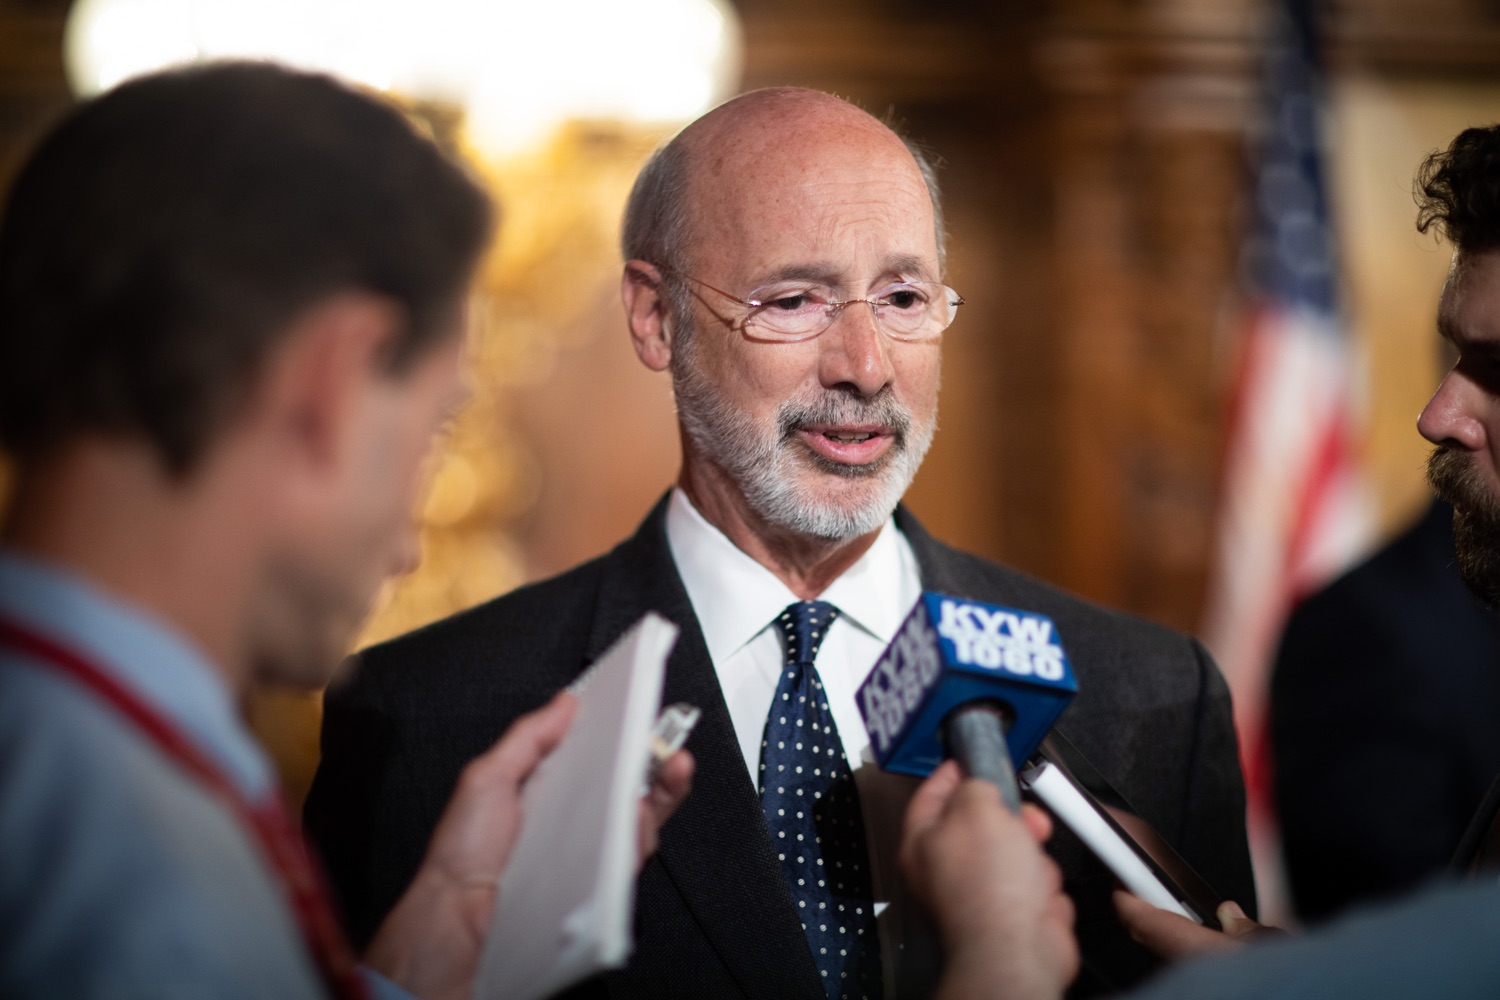 "<a href=""http://filesource.abacast.com/commonwealthofpa/photo/17423_gov_trip_recap_dz_011.jpg"" target=""_blank"">⇣ Download Photo<br></a>Harrisburg, PA  Governor Tom Wolf speaking with the press.   Governor Tom Wolf today highlighted the second half of his trip abroad, including visiting with more than 500 PA National Guard (PNG) troops in Poland, and honoring the Tree of Life synagogue victims at the Auschwitz-Birkenau Memorial. Tuesday, September 17, 2019"